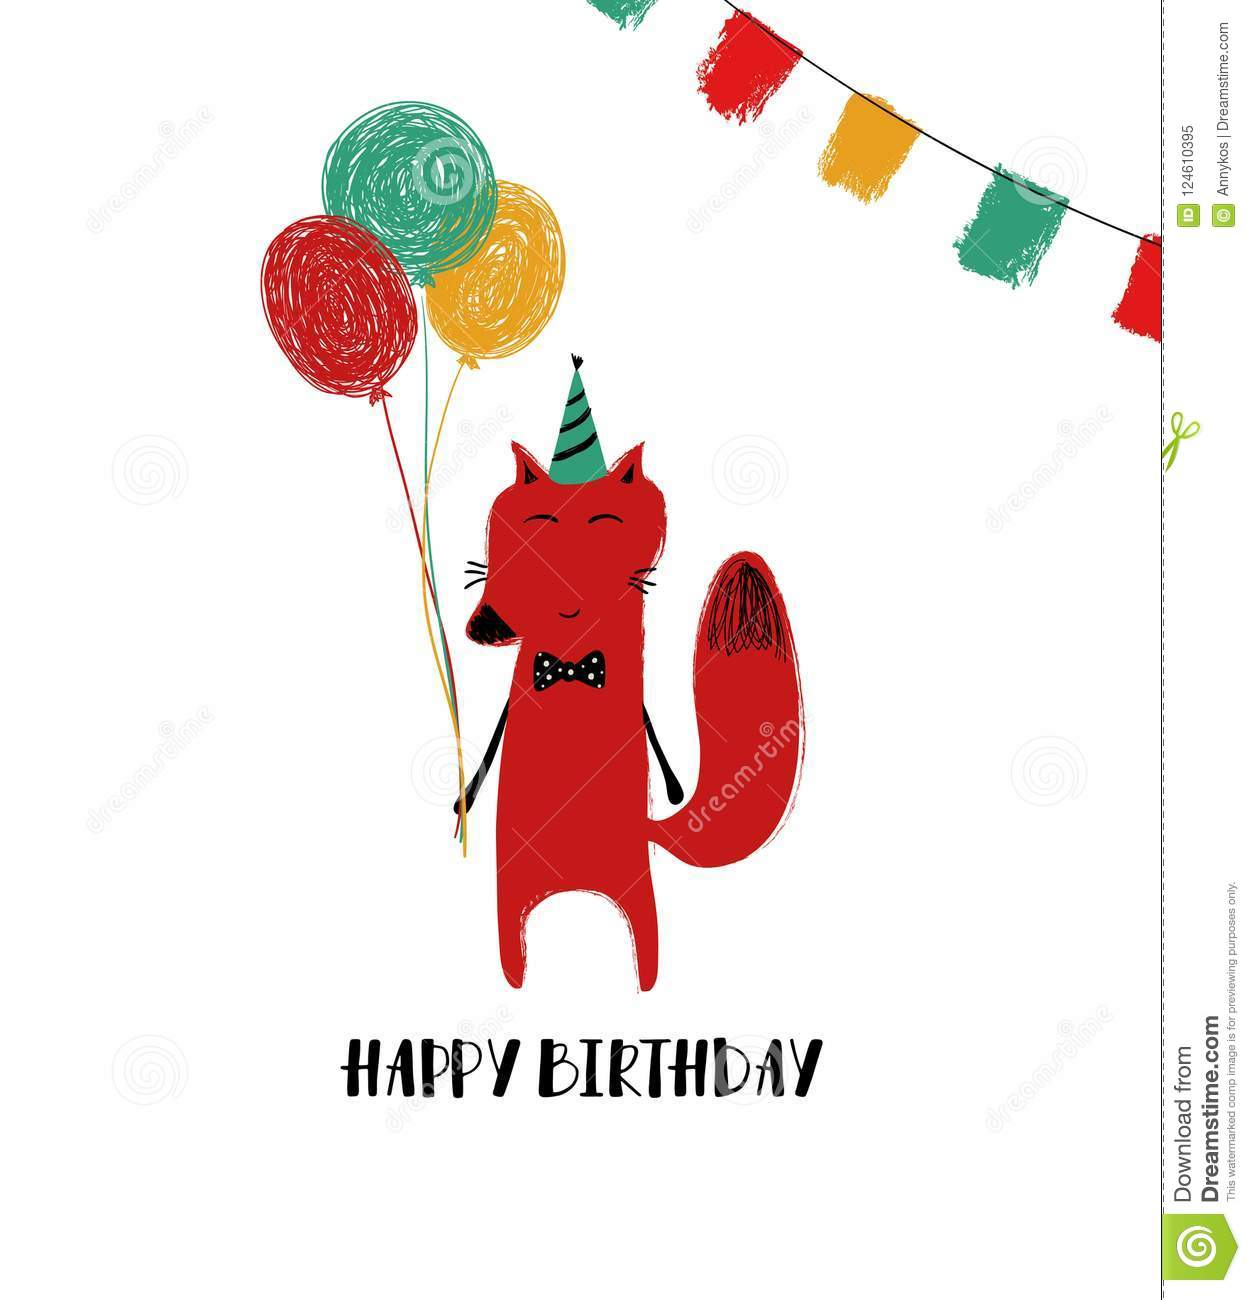 Birthday Card With Red Fox